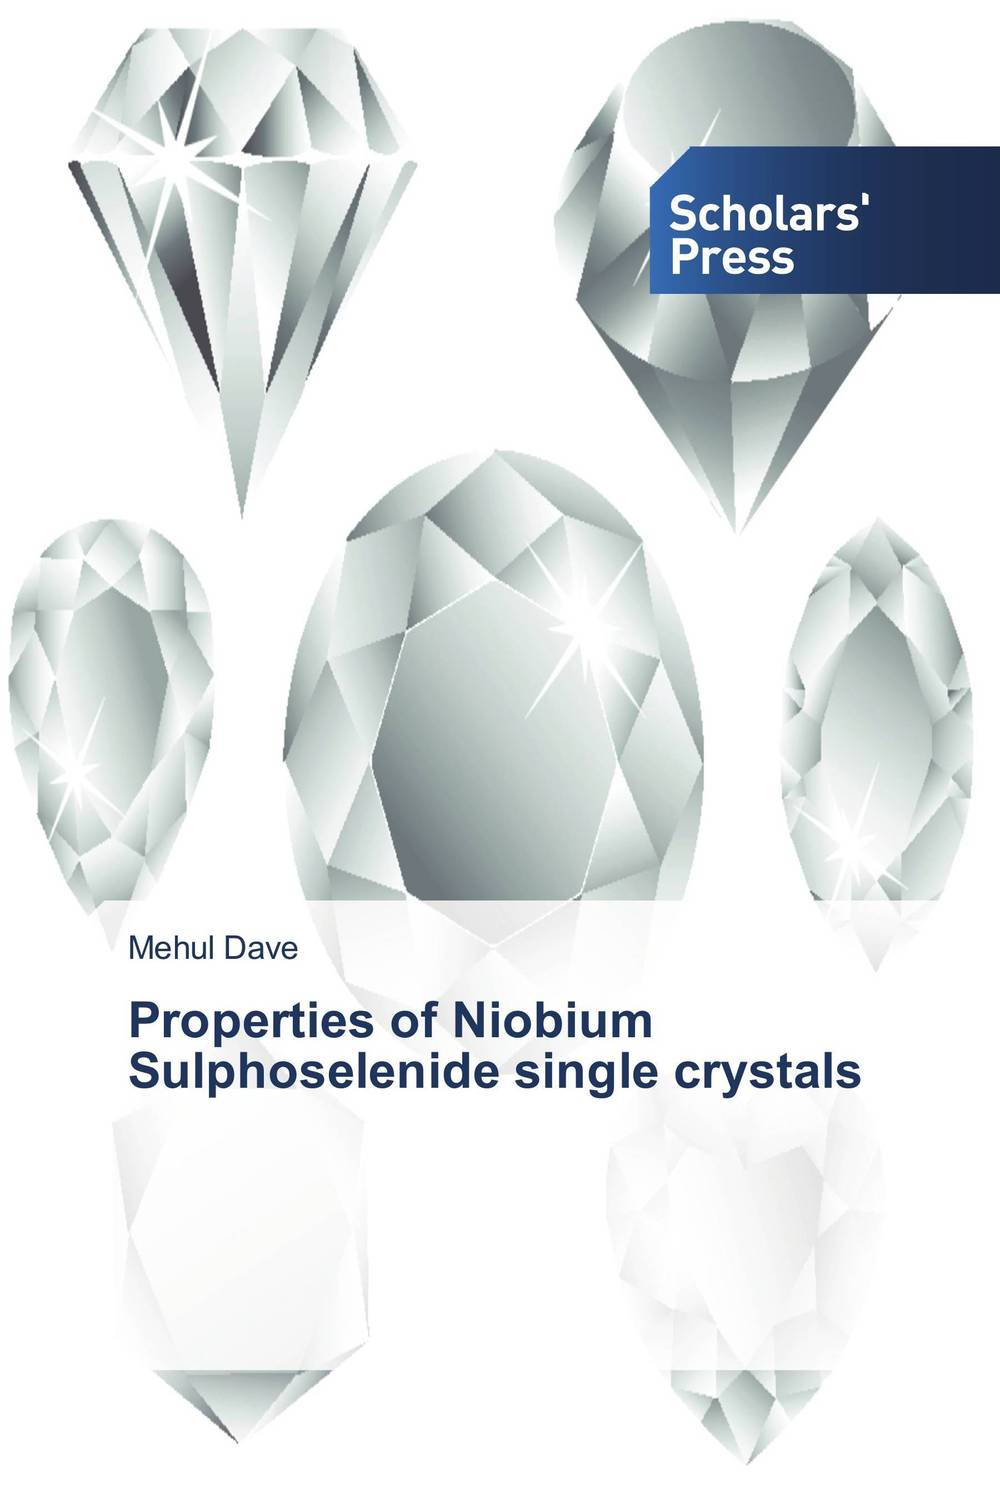 Properties of Niobium Sulphoselenide single crystals crystal structure prediction and energy landscapes of binary compounds